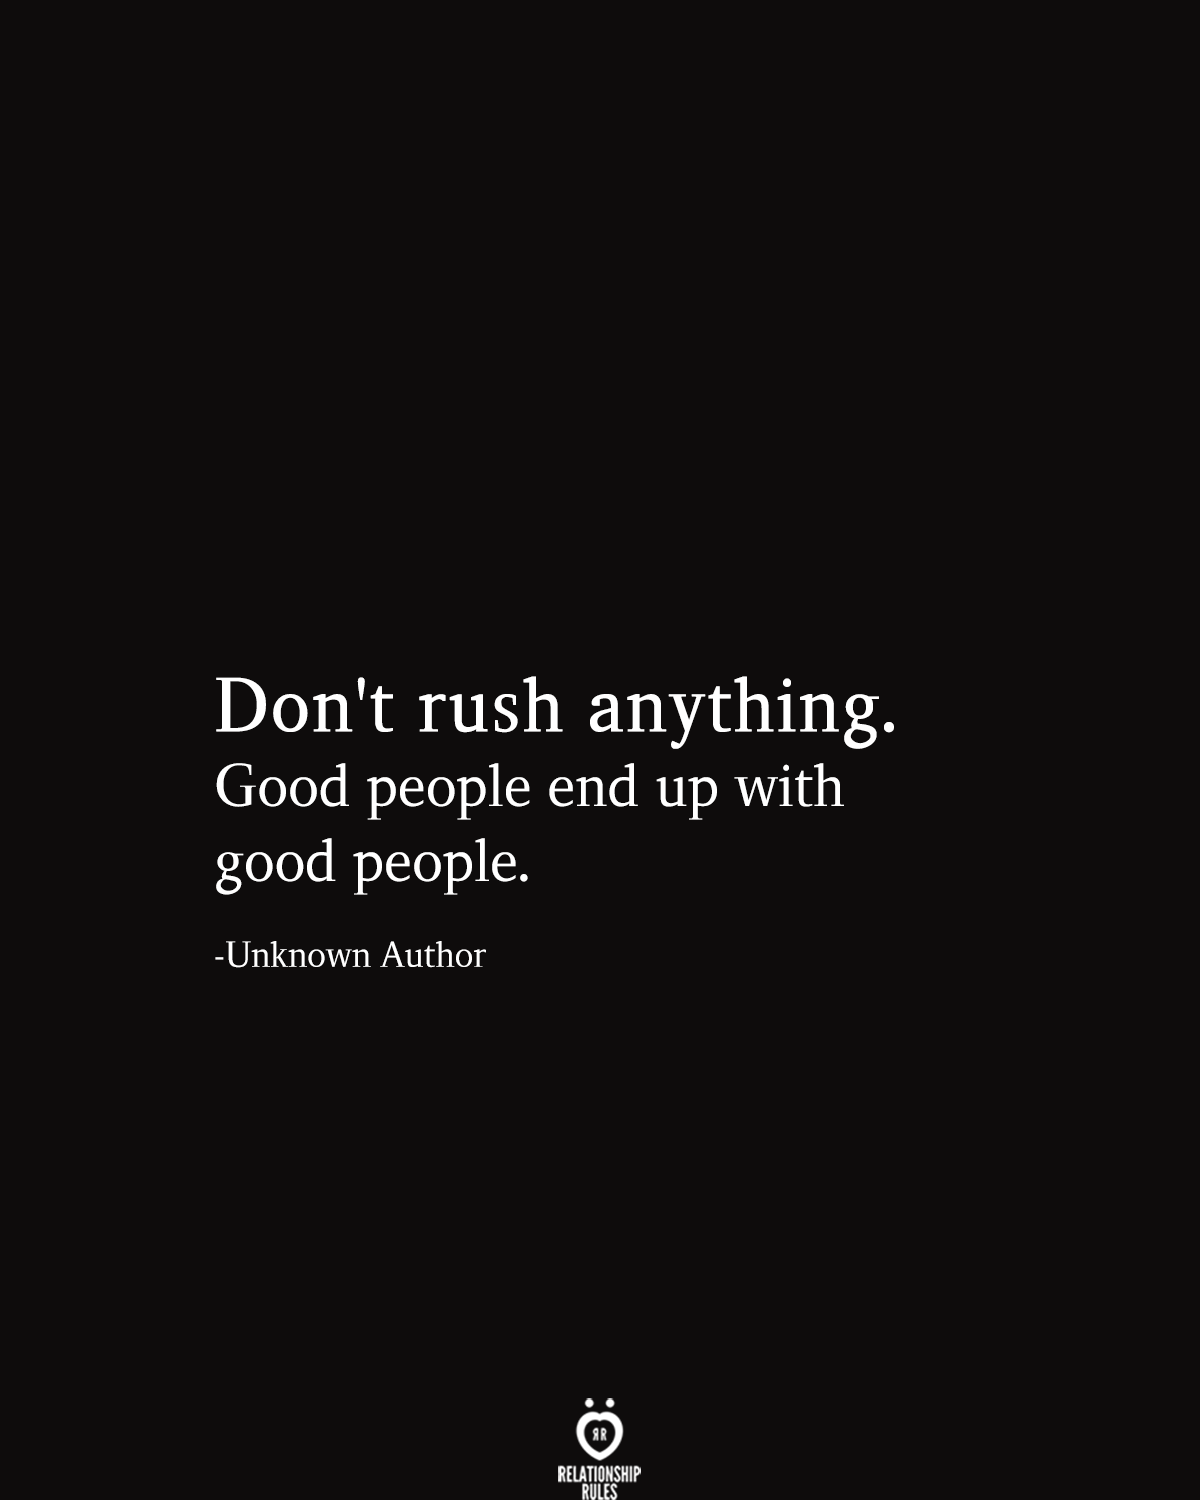 Don't rush anything. Good people end up with good people.